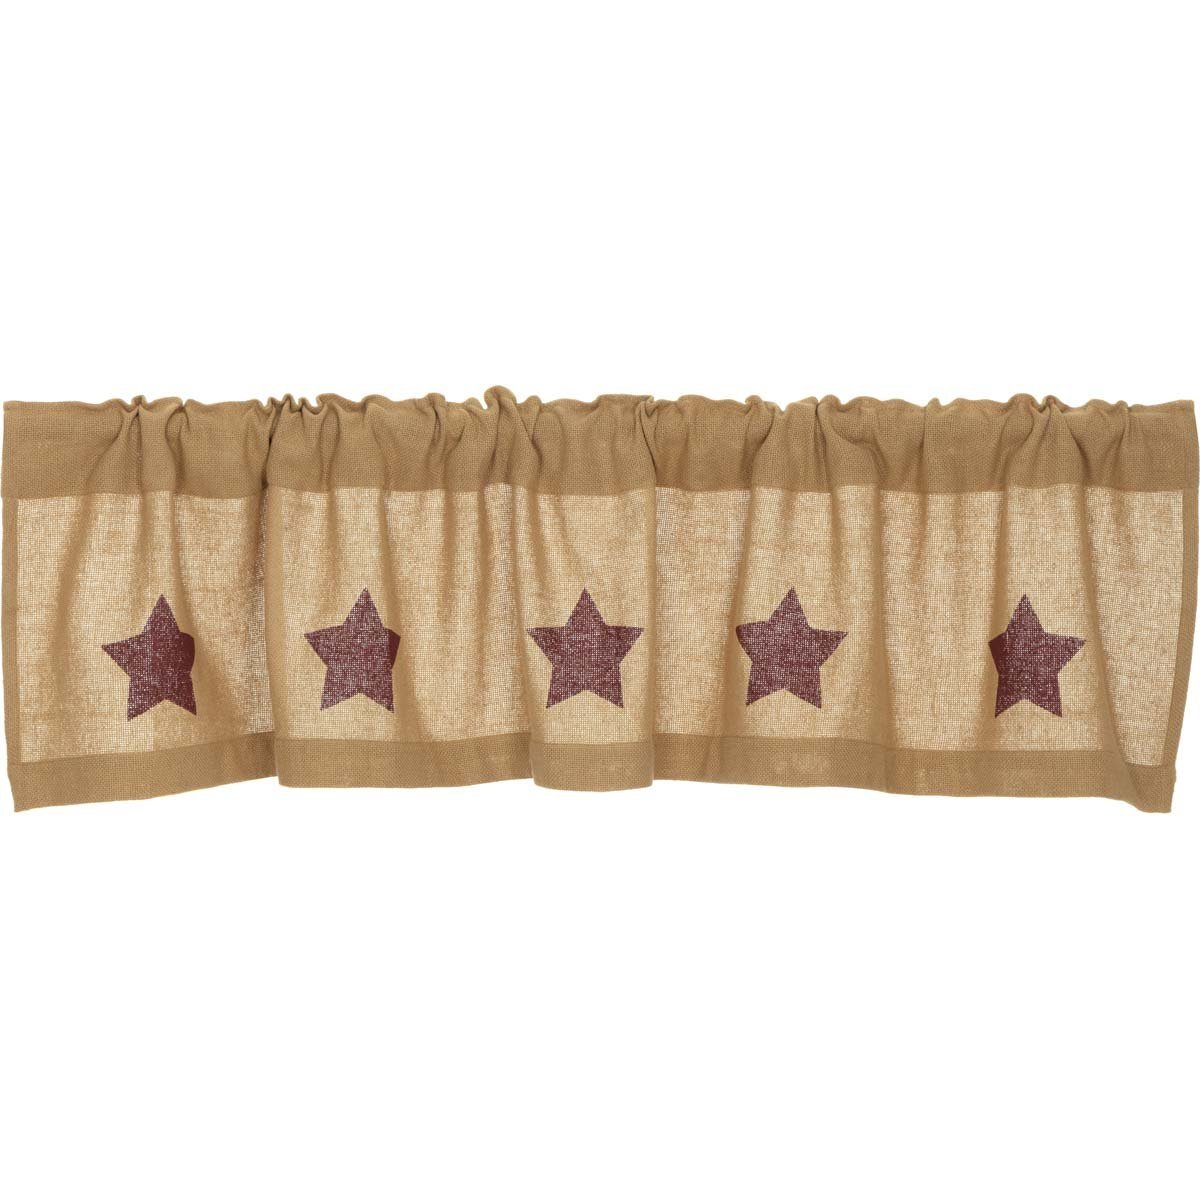 Burlap Natural with Burgundy Stars Valance.